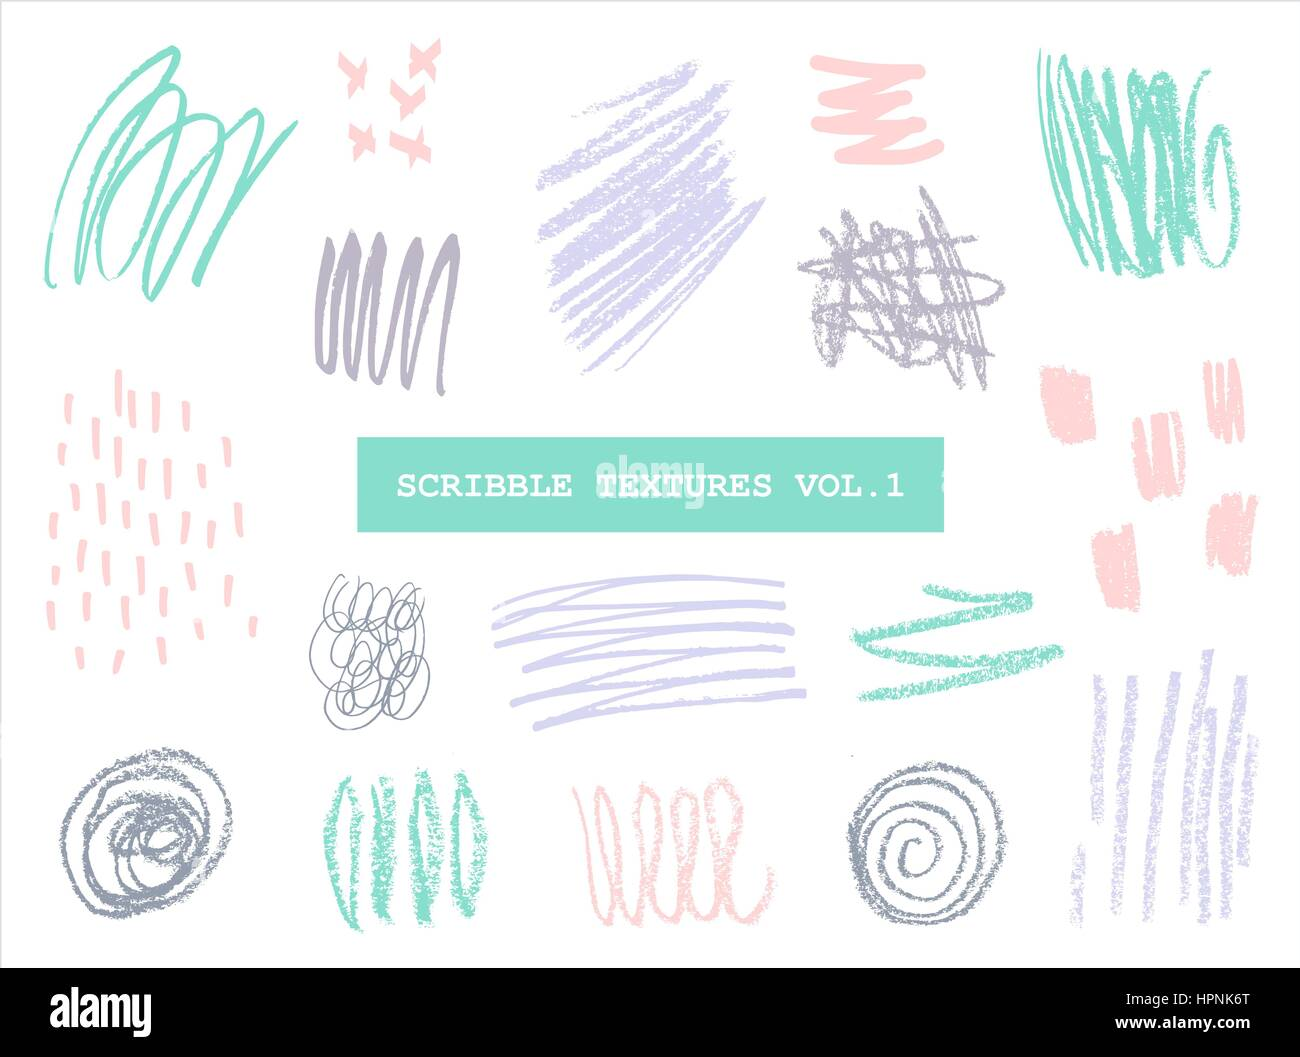 A set of hand drawn scribble textures in pastel colors isolated on white background. - Stock Image